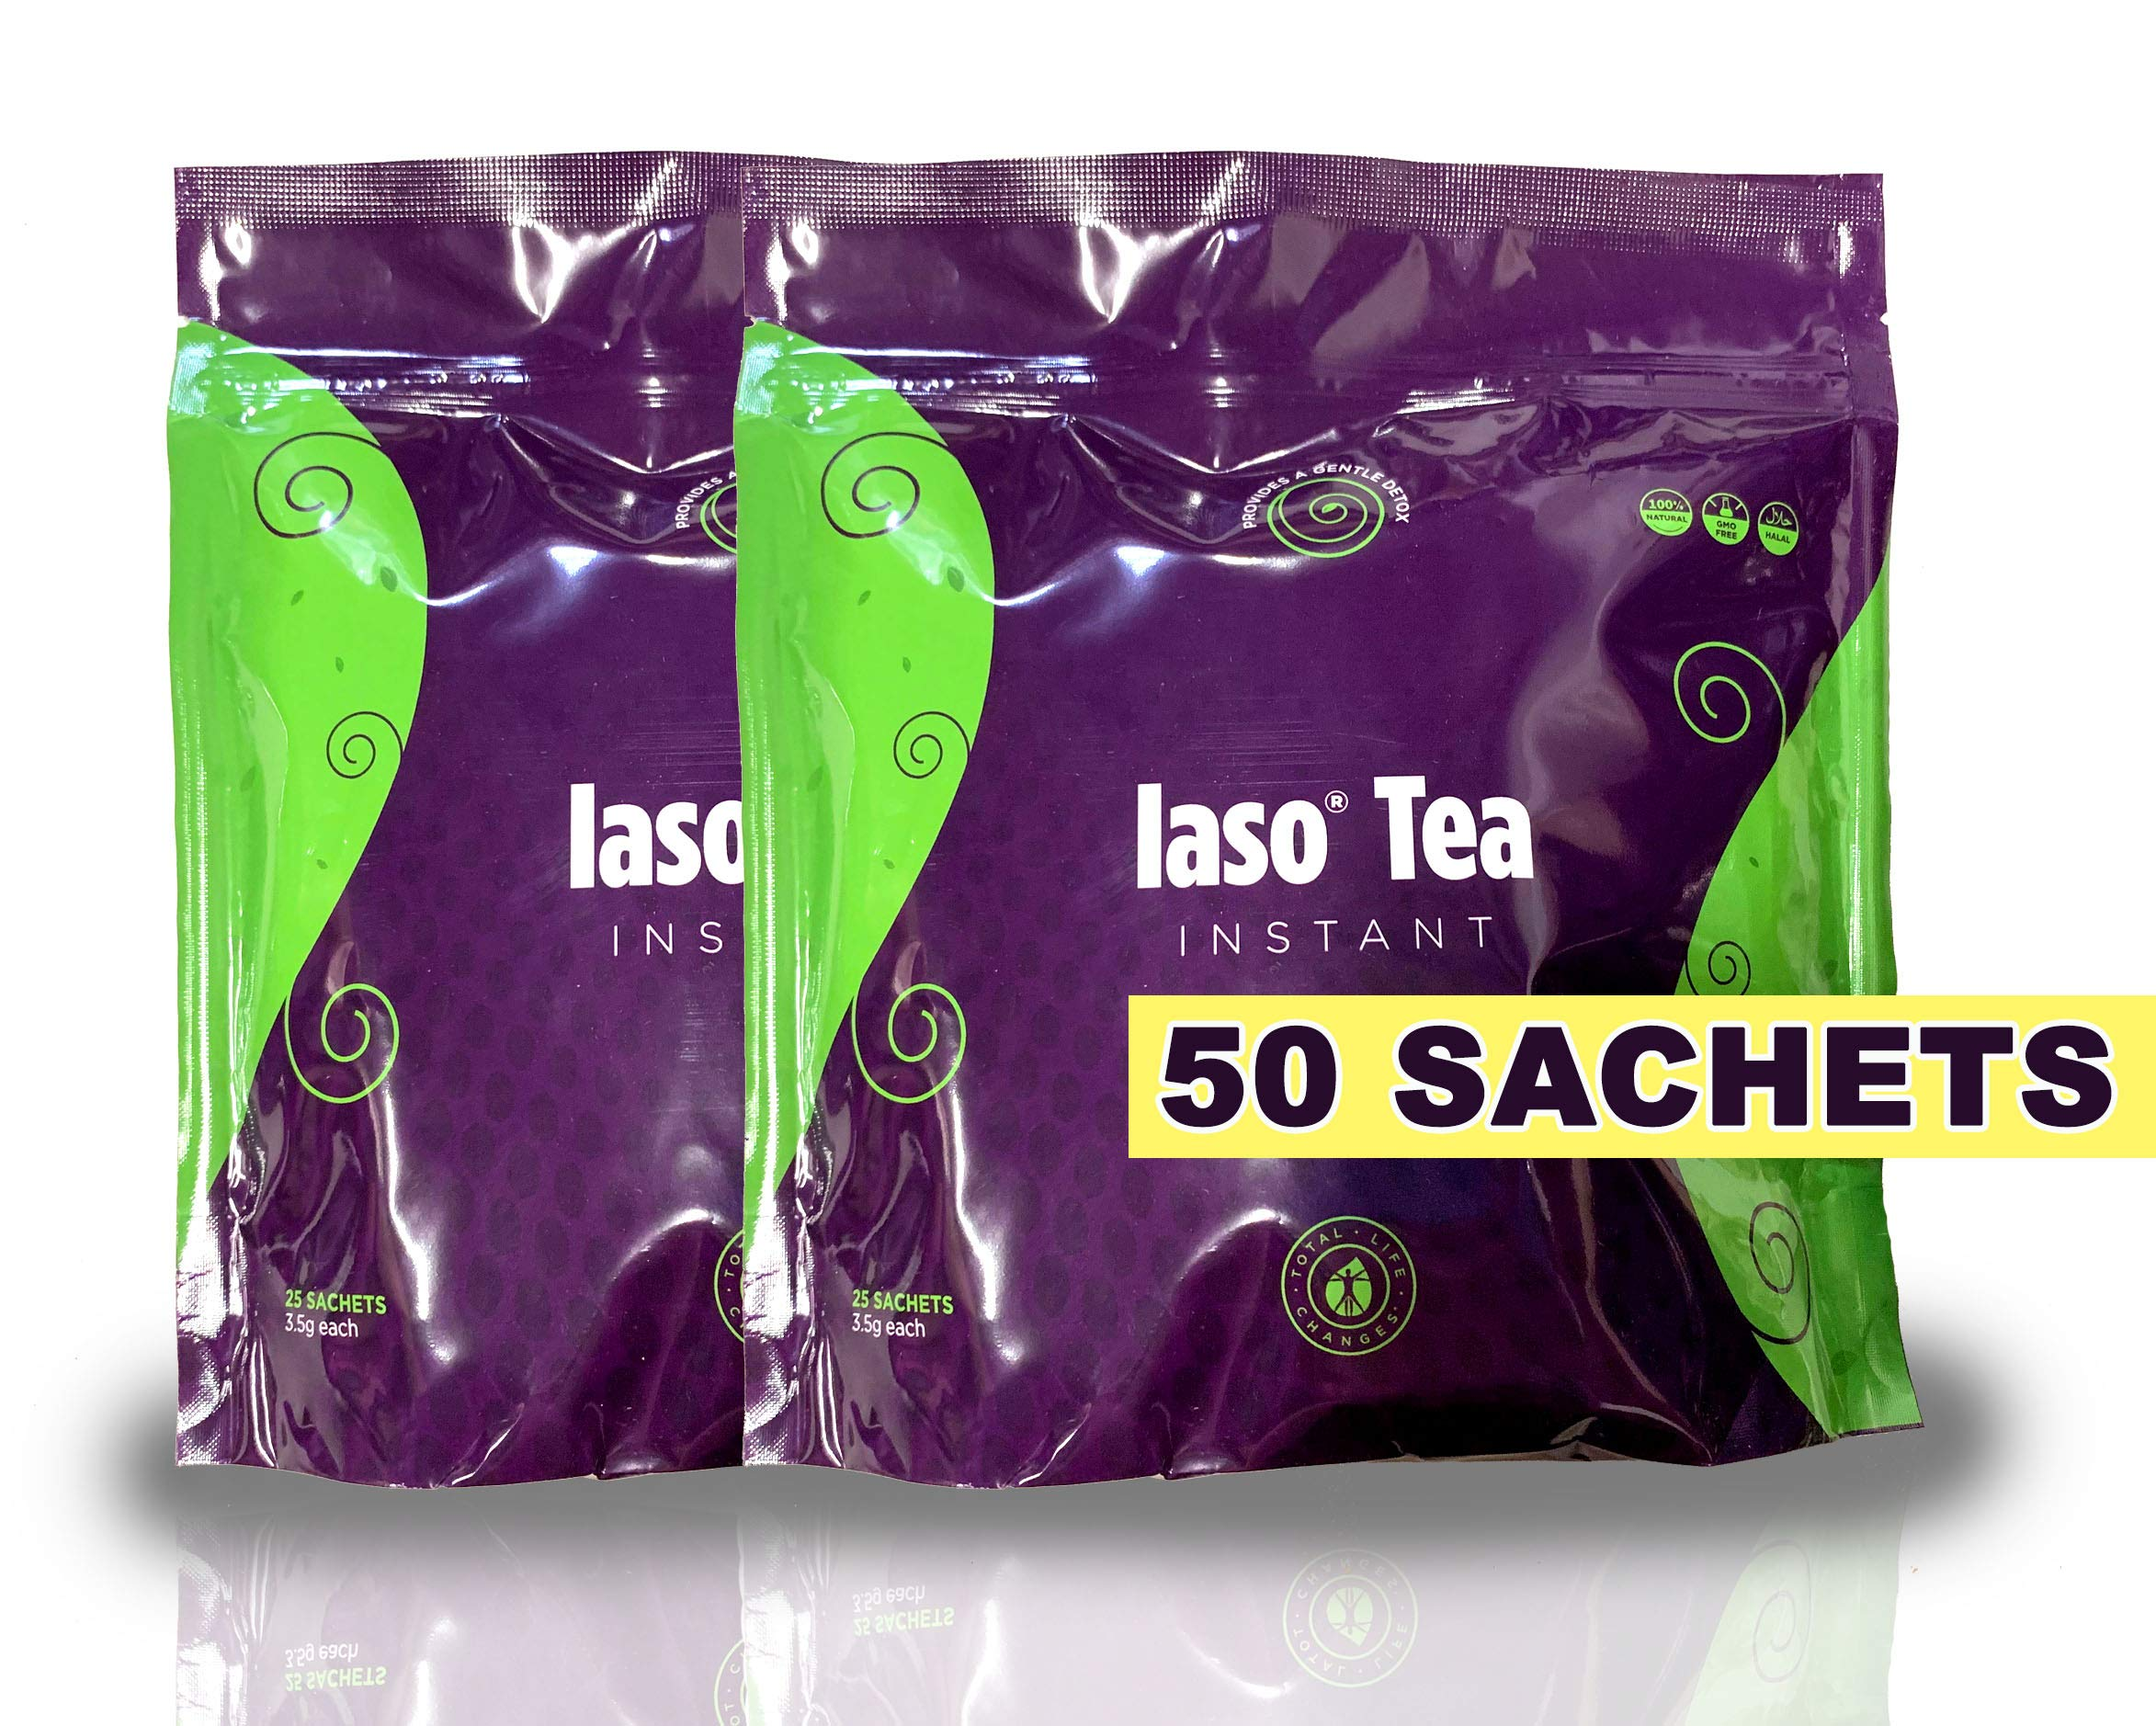 TLC Total Life Changes IASO Natural Detox Instant Herbal Tea (50 Sachets) Packaging May Vary Between Old & New in 201 by Total Life Changes